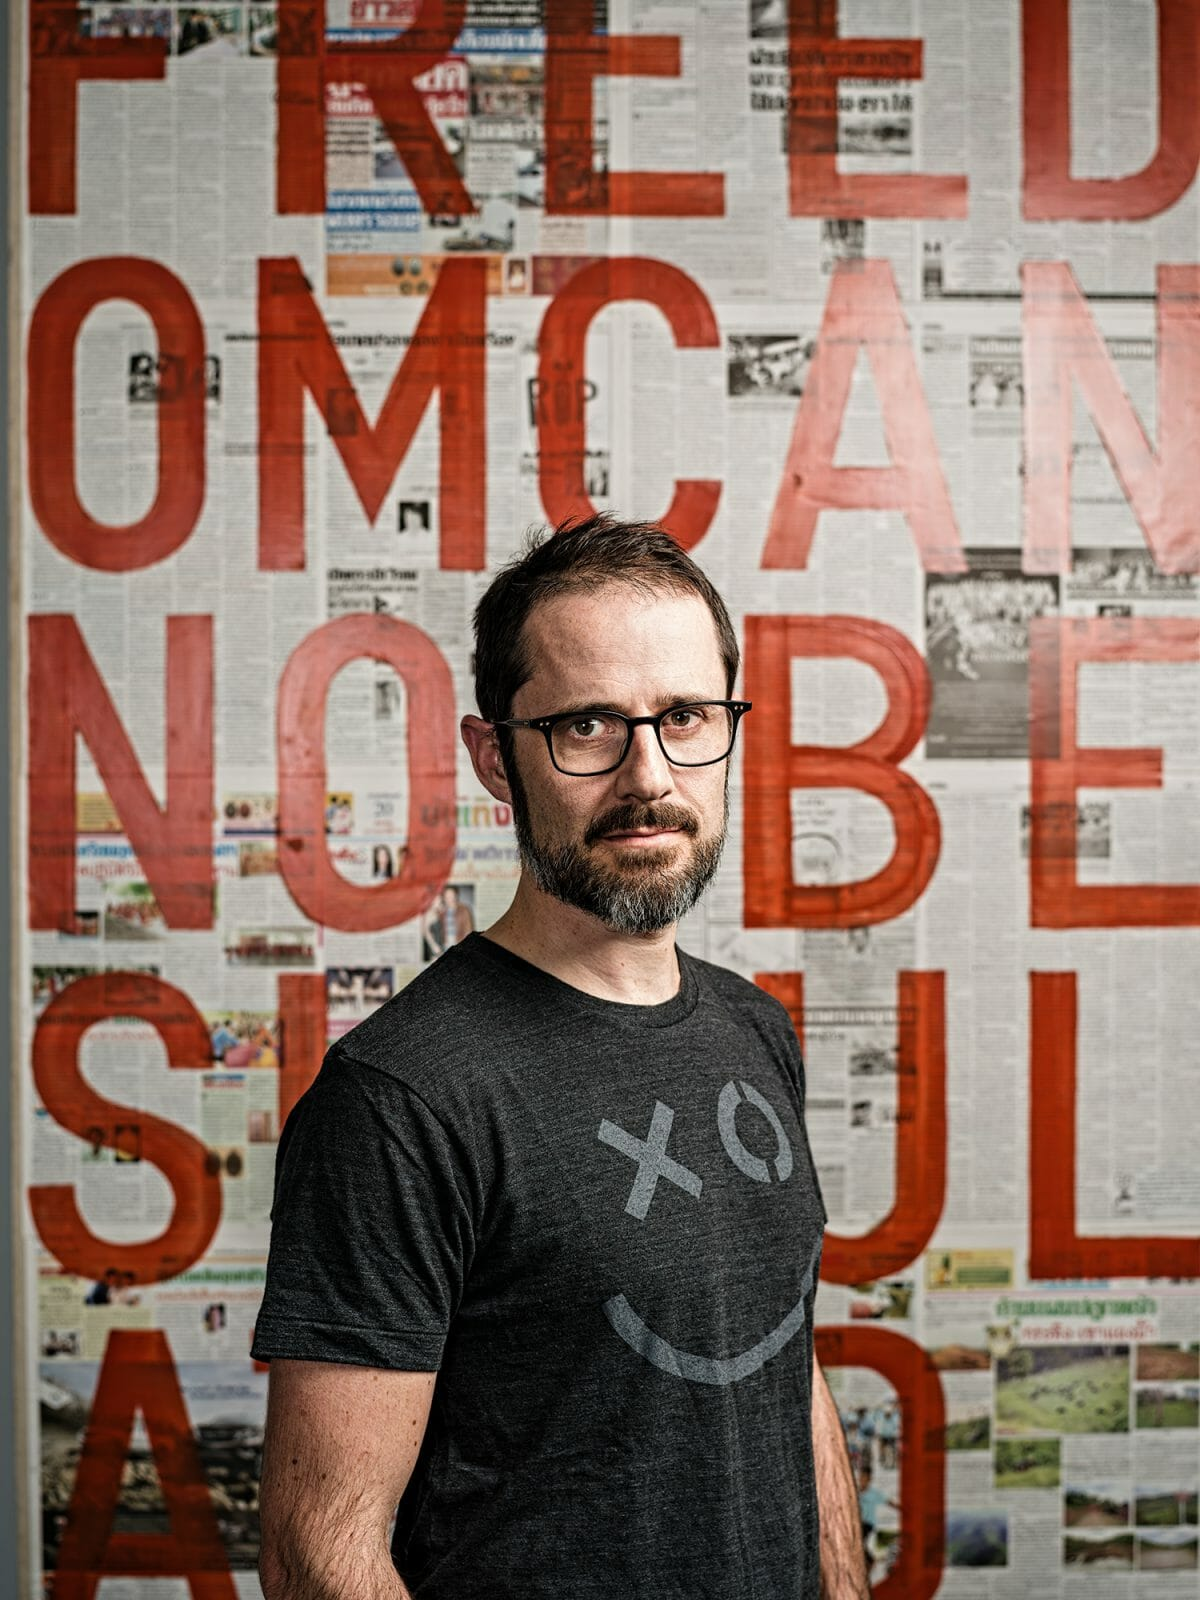 Portrait of Evan Williams, founder of Medium